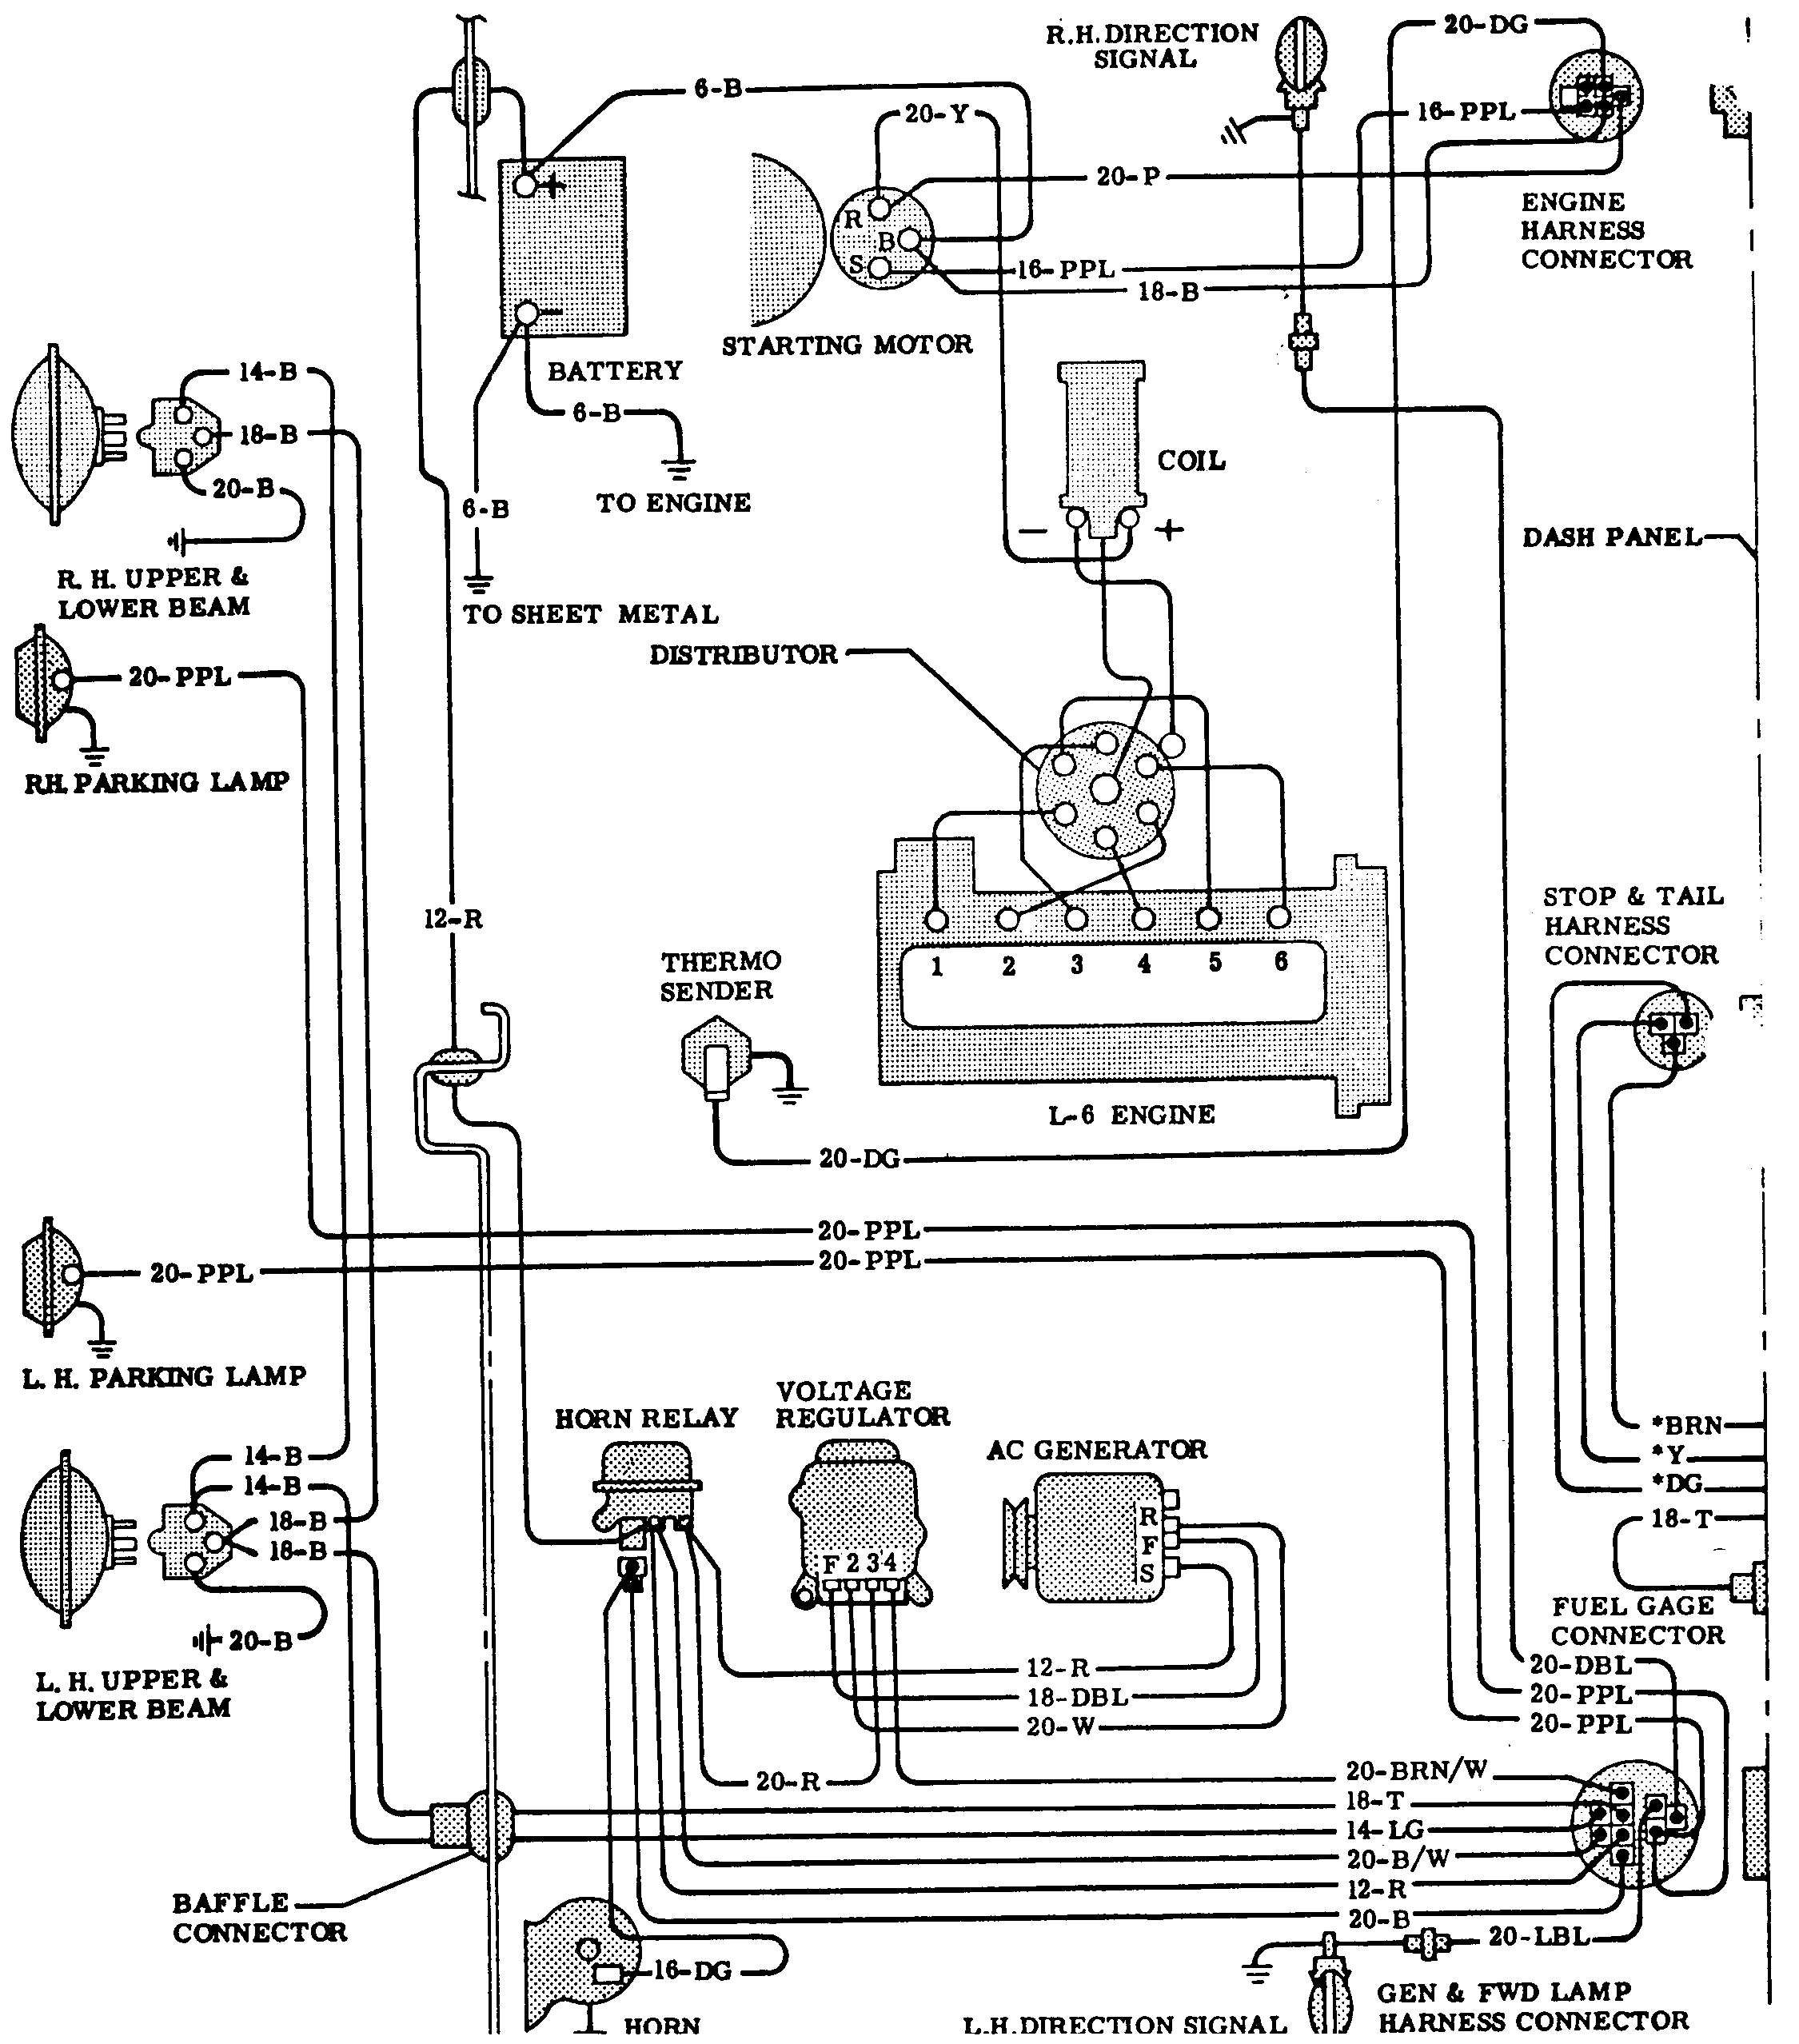 Diagram 1972 Chevy C10 Horn Wiring Diagram Full Version Hd Quality Wiring Diagram Healthydiagrams Media90 It